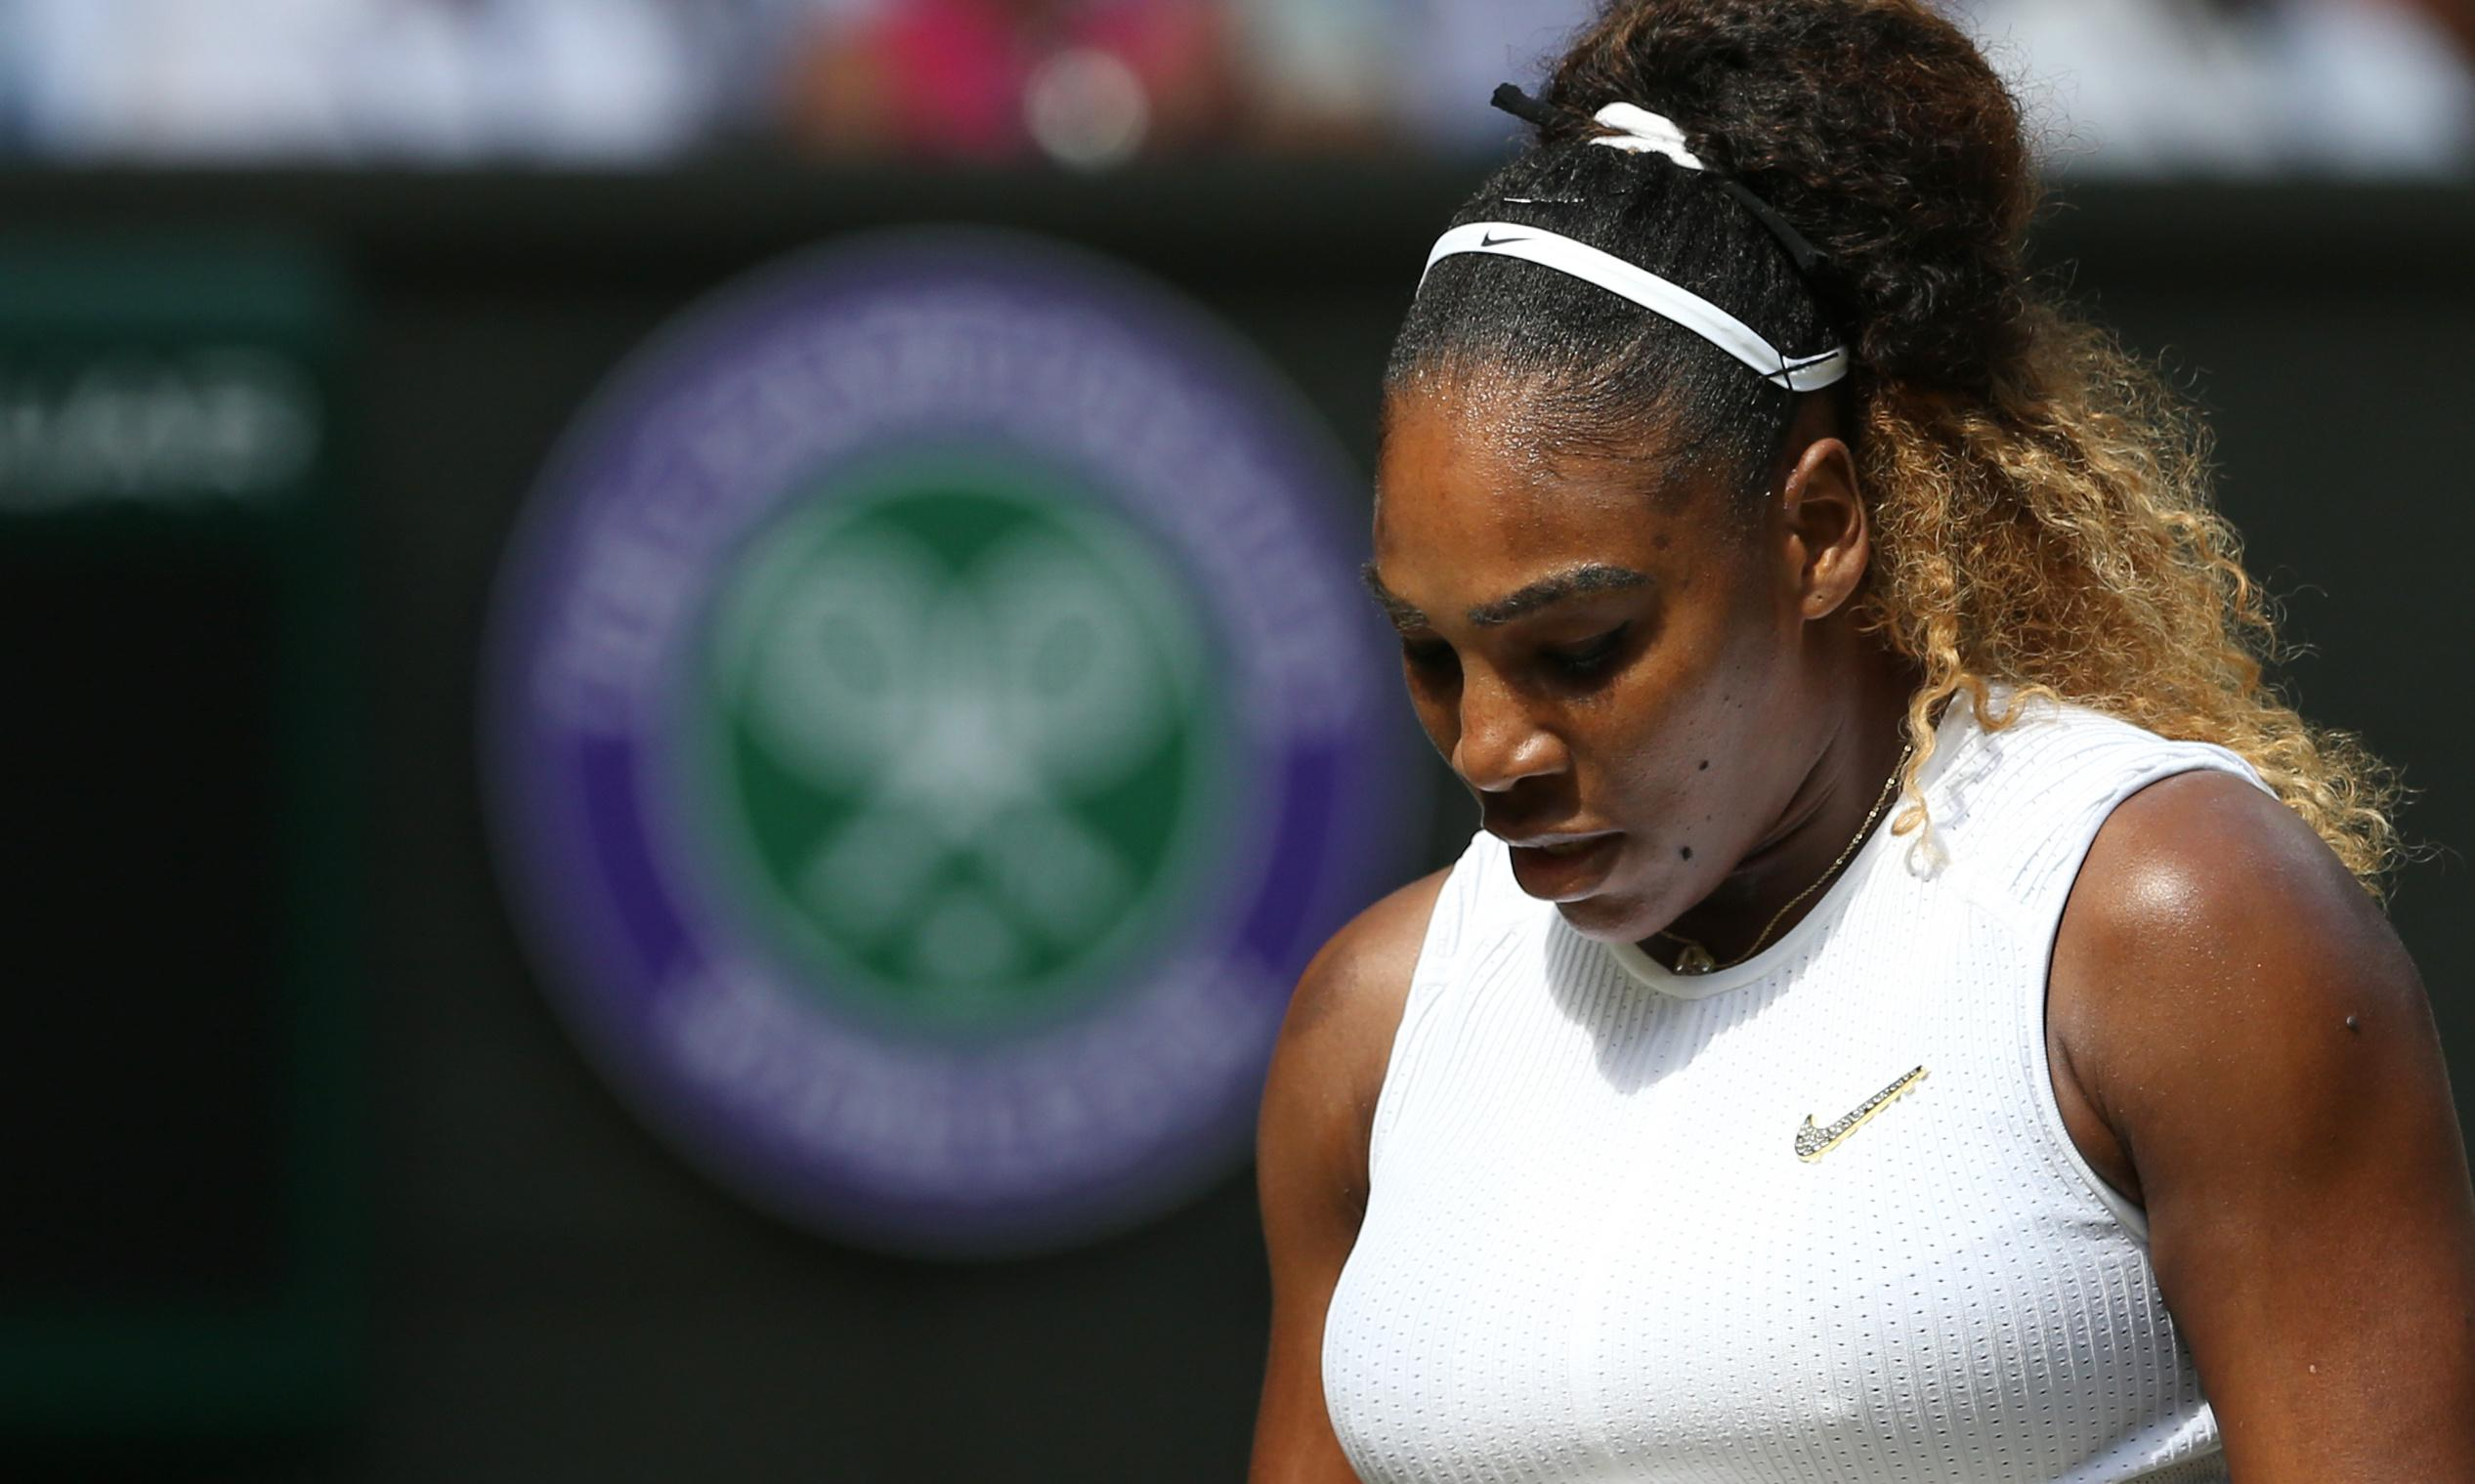 Serena Williams battles burden of expectation before Simona Halep final